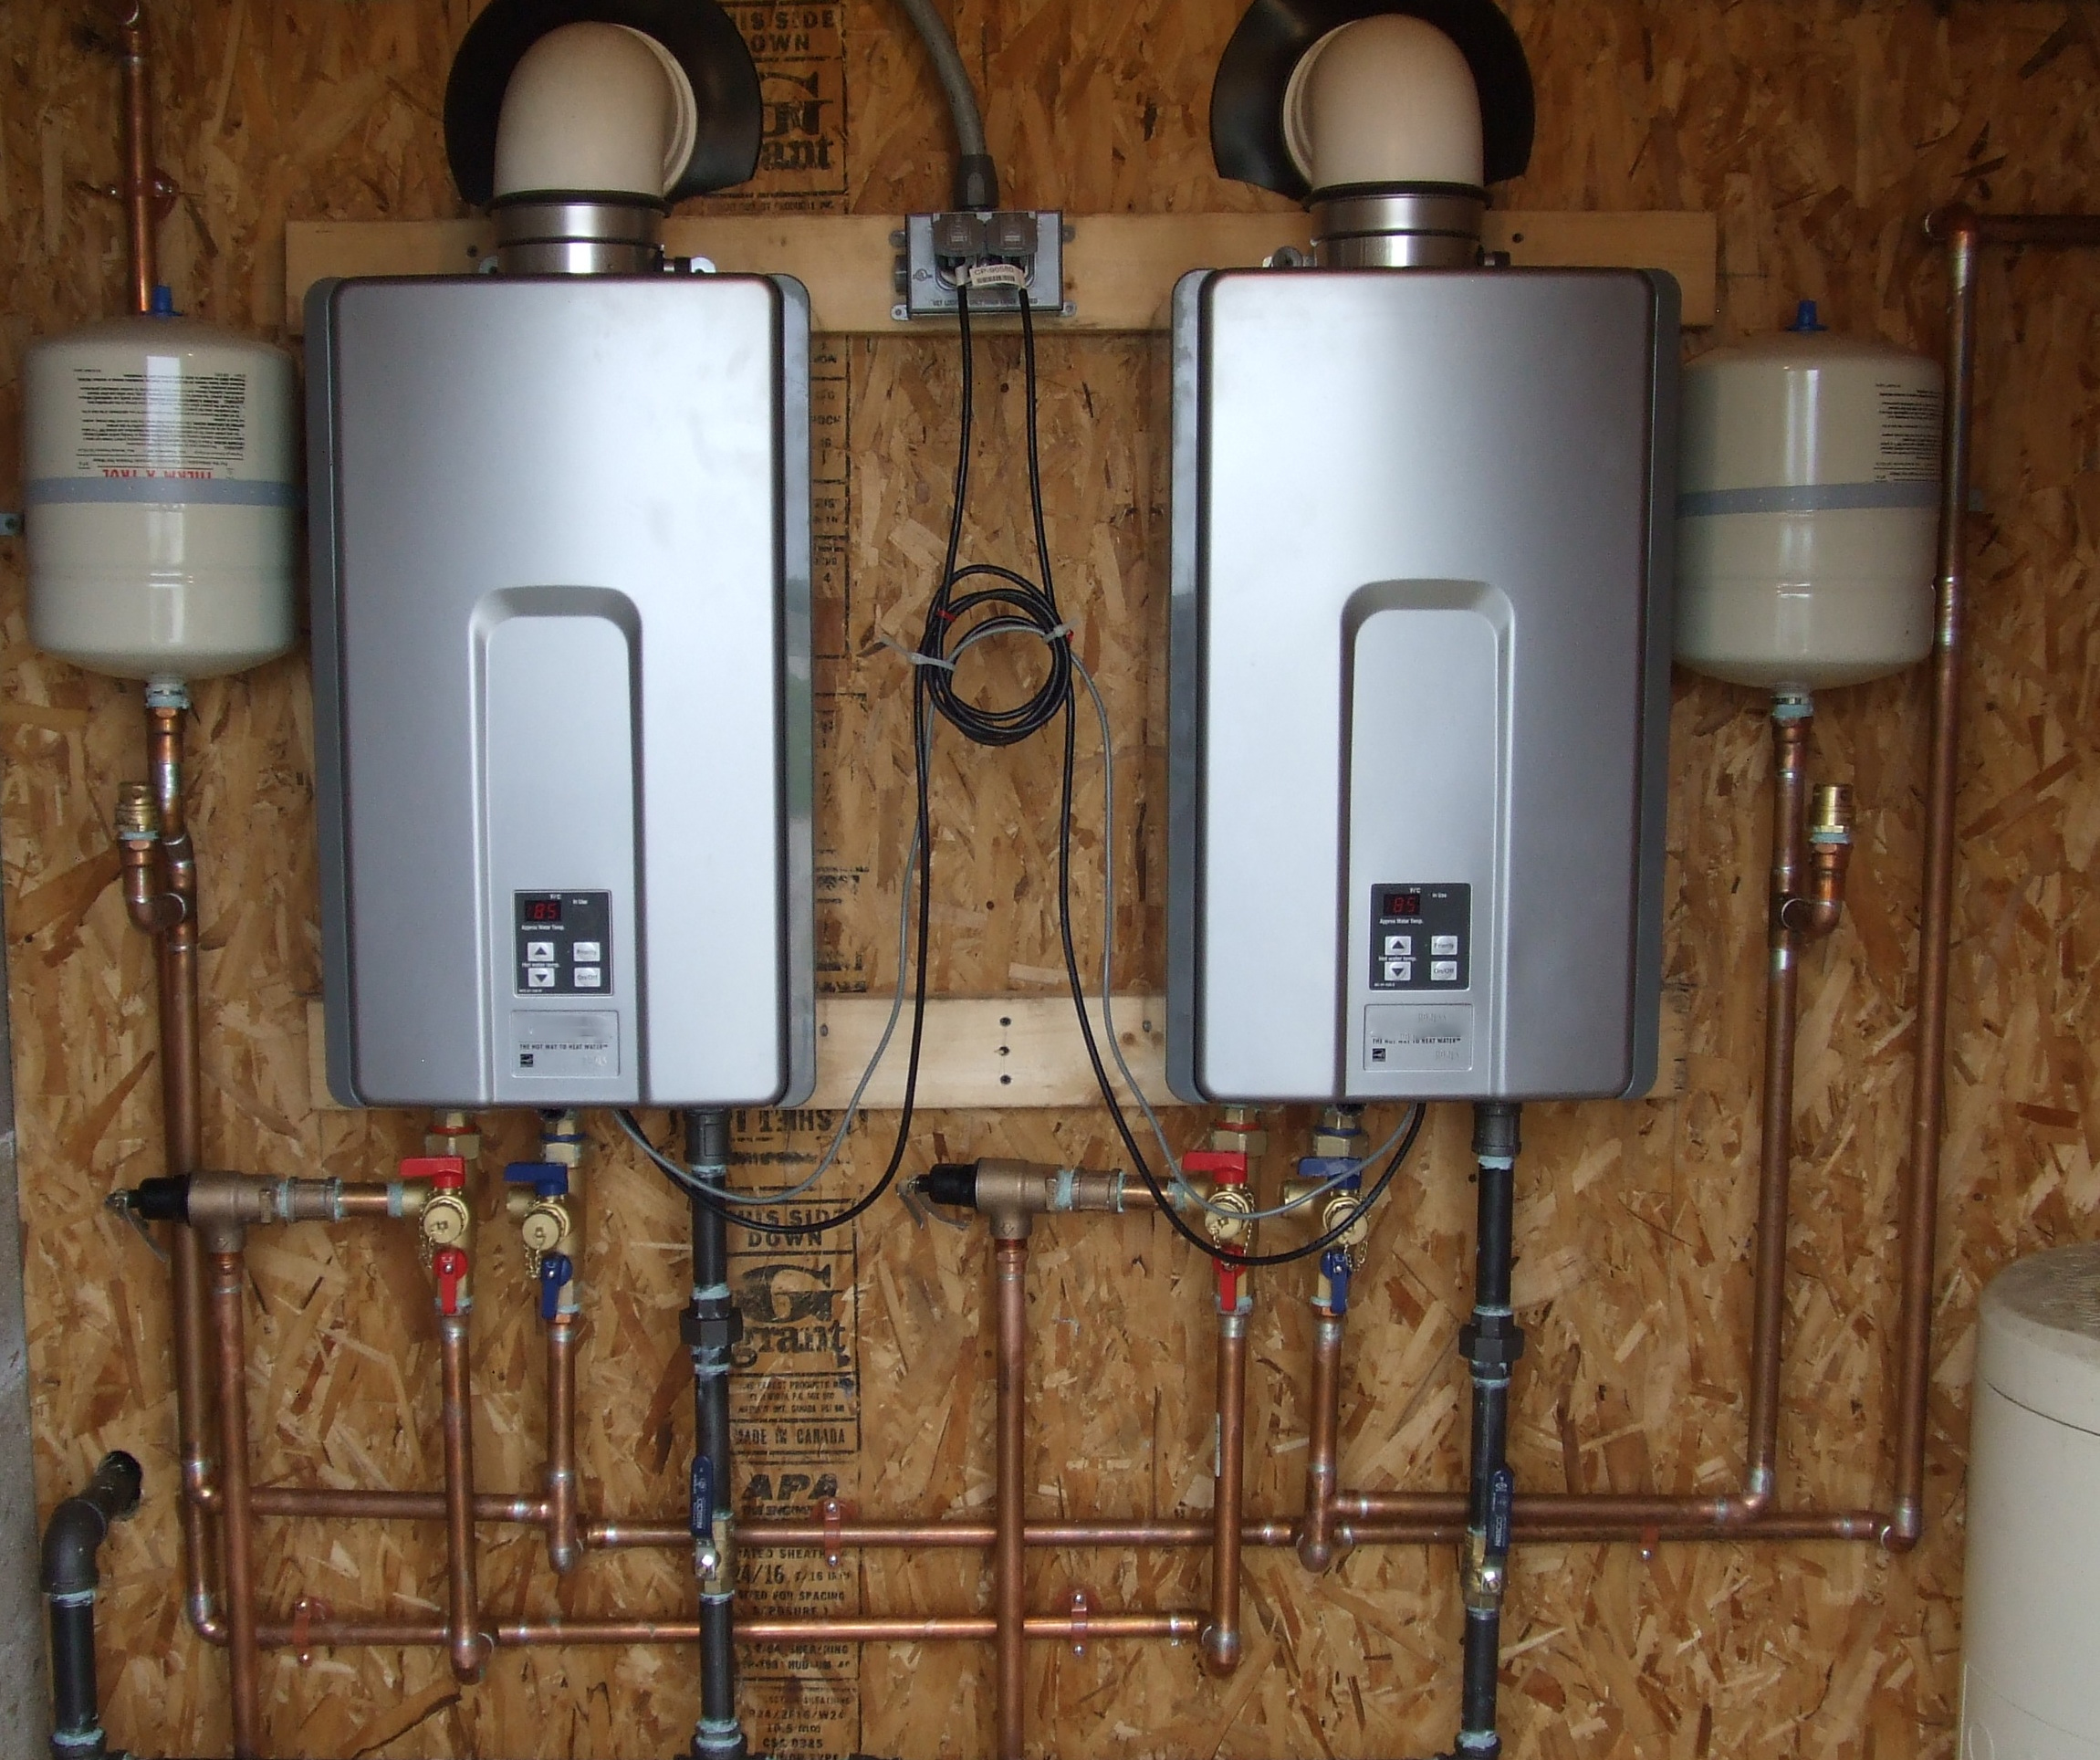 Wiring Money To Canada Tankless Water Heaters A Heater Provides Hot As Needed Saving Energy And Save An By Emitting Fewer Greenhouse